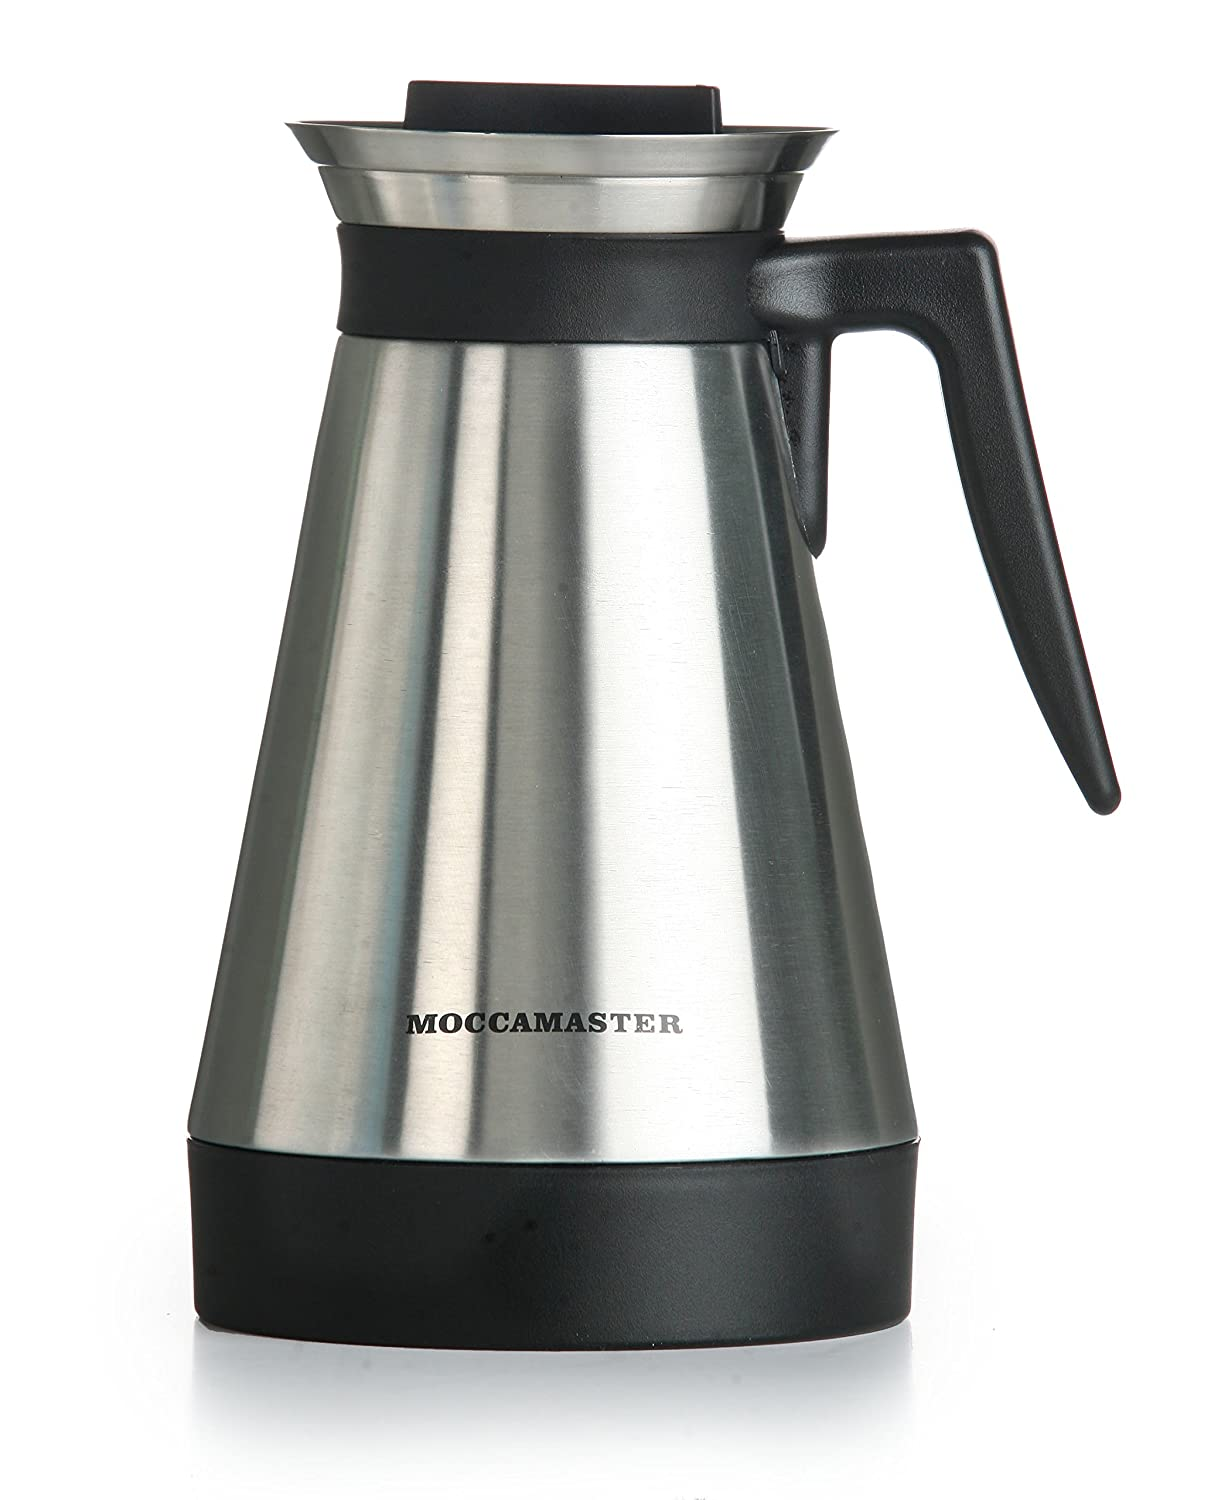 Amazon.com: Moccamaster KBT 10-Cup Coffee Brewer with Thermal Carafe,  Polished Silver: Drip Coffeemakers: Kitchen & Dining